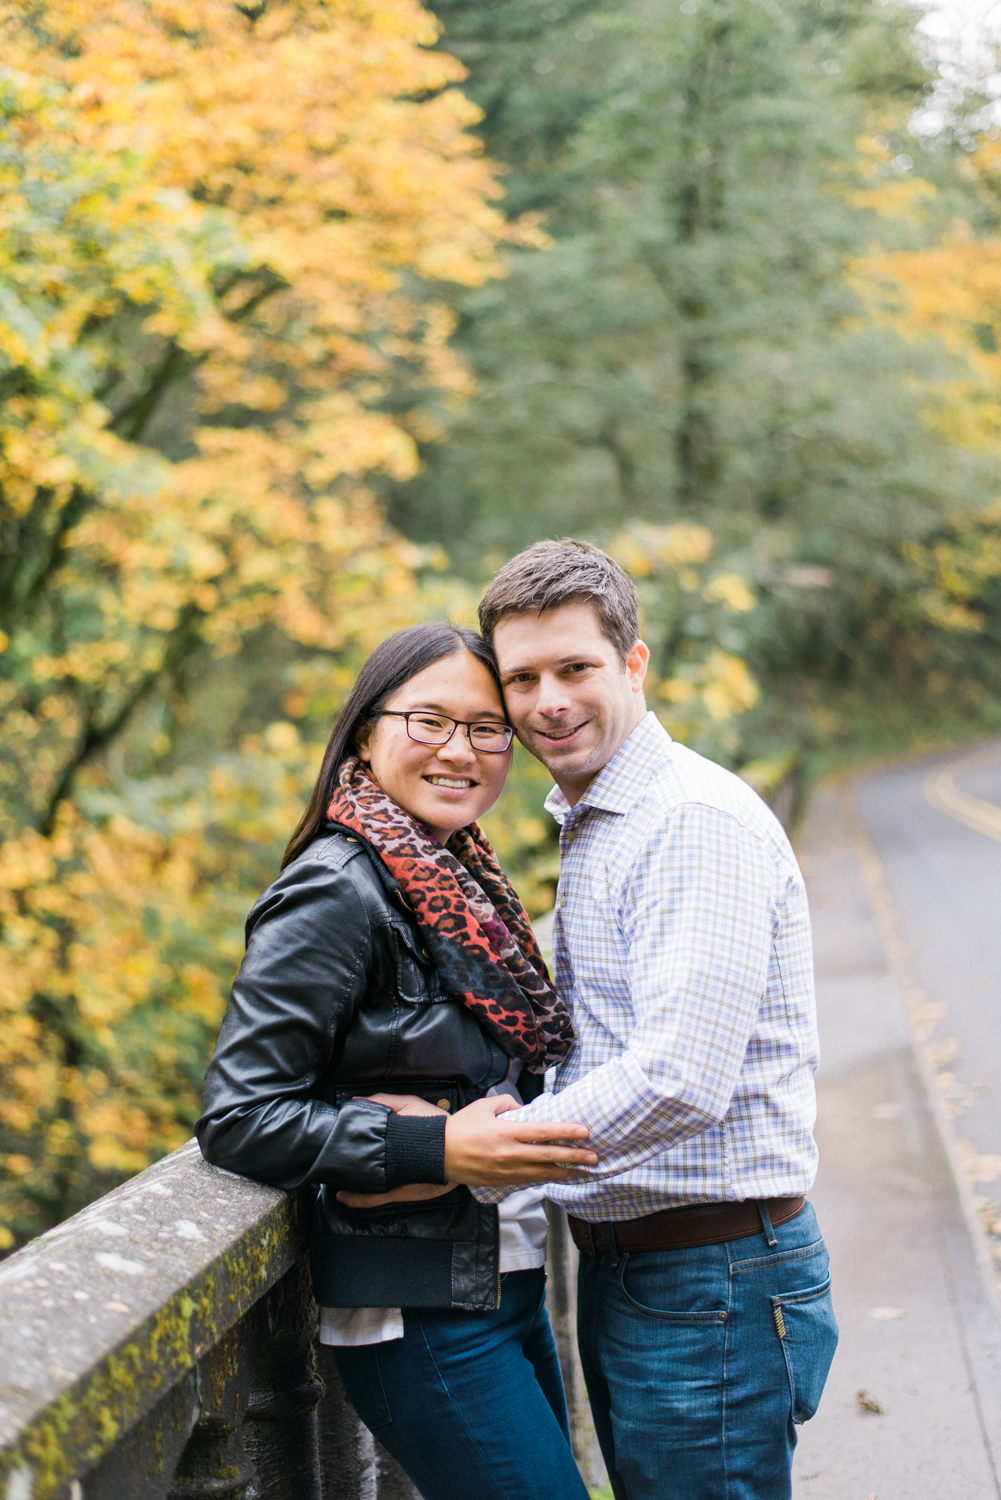 portland-engagement-columbia-river-gorge-latourell-waterfall-autumn-fall-crown-point-shelley-marie-photo-35.jpg